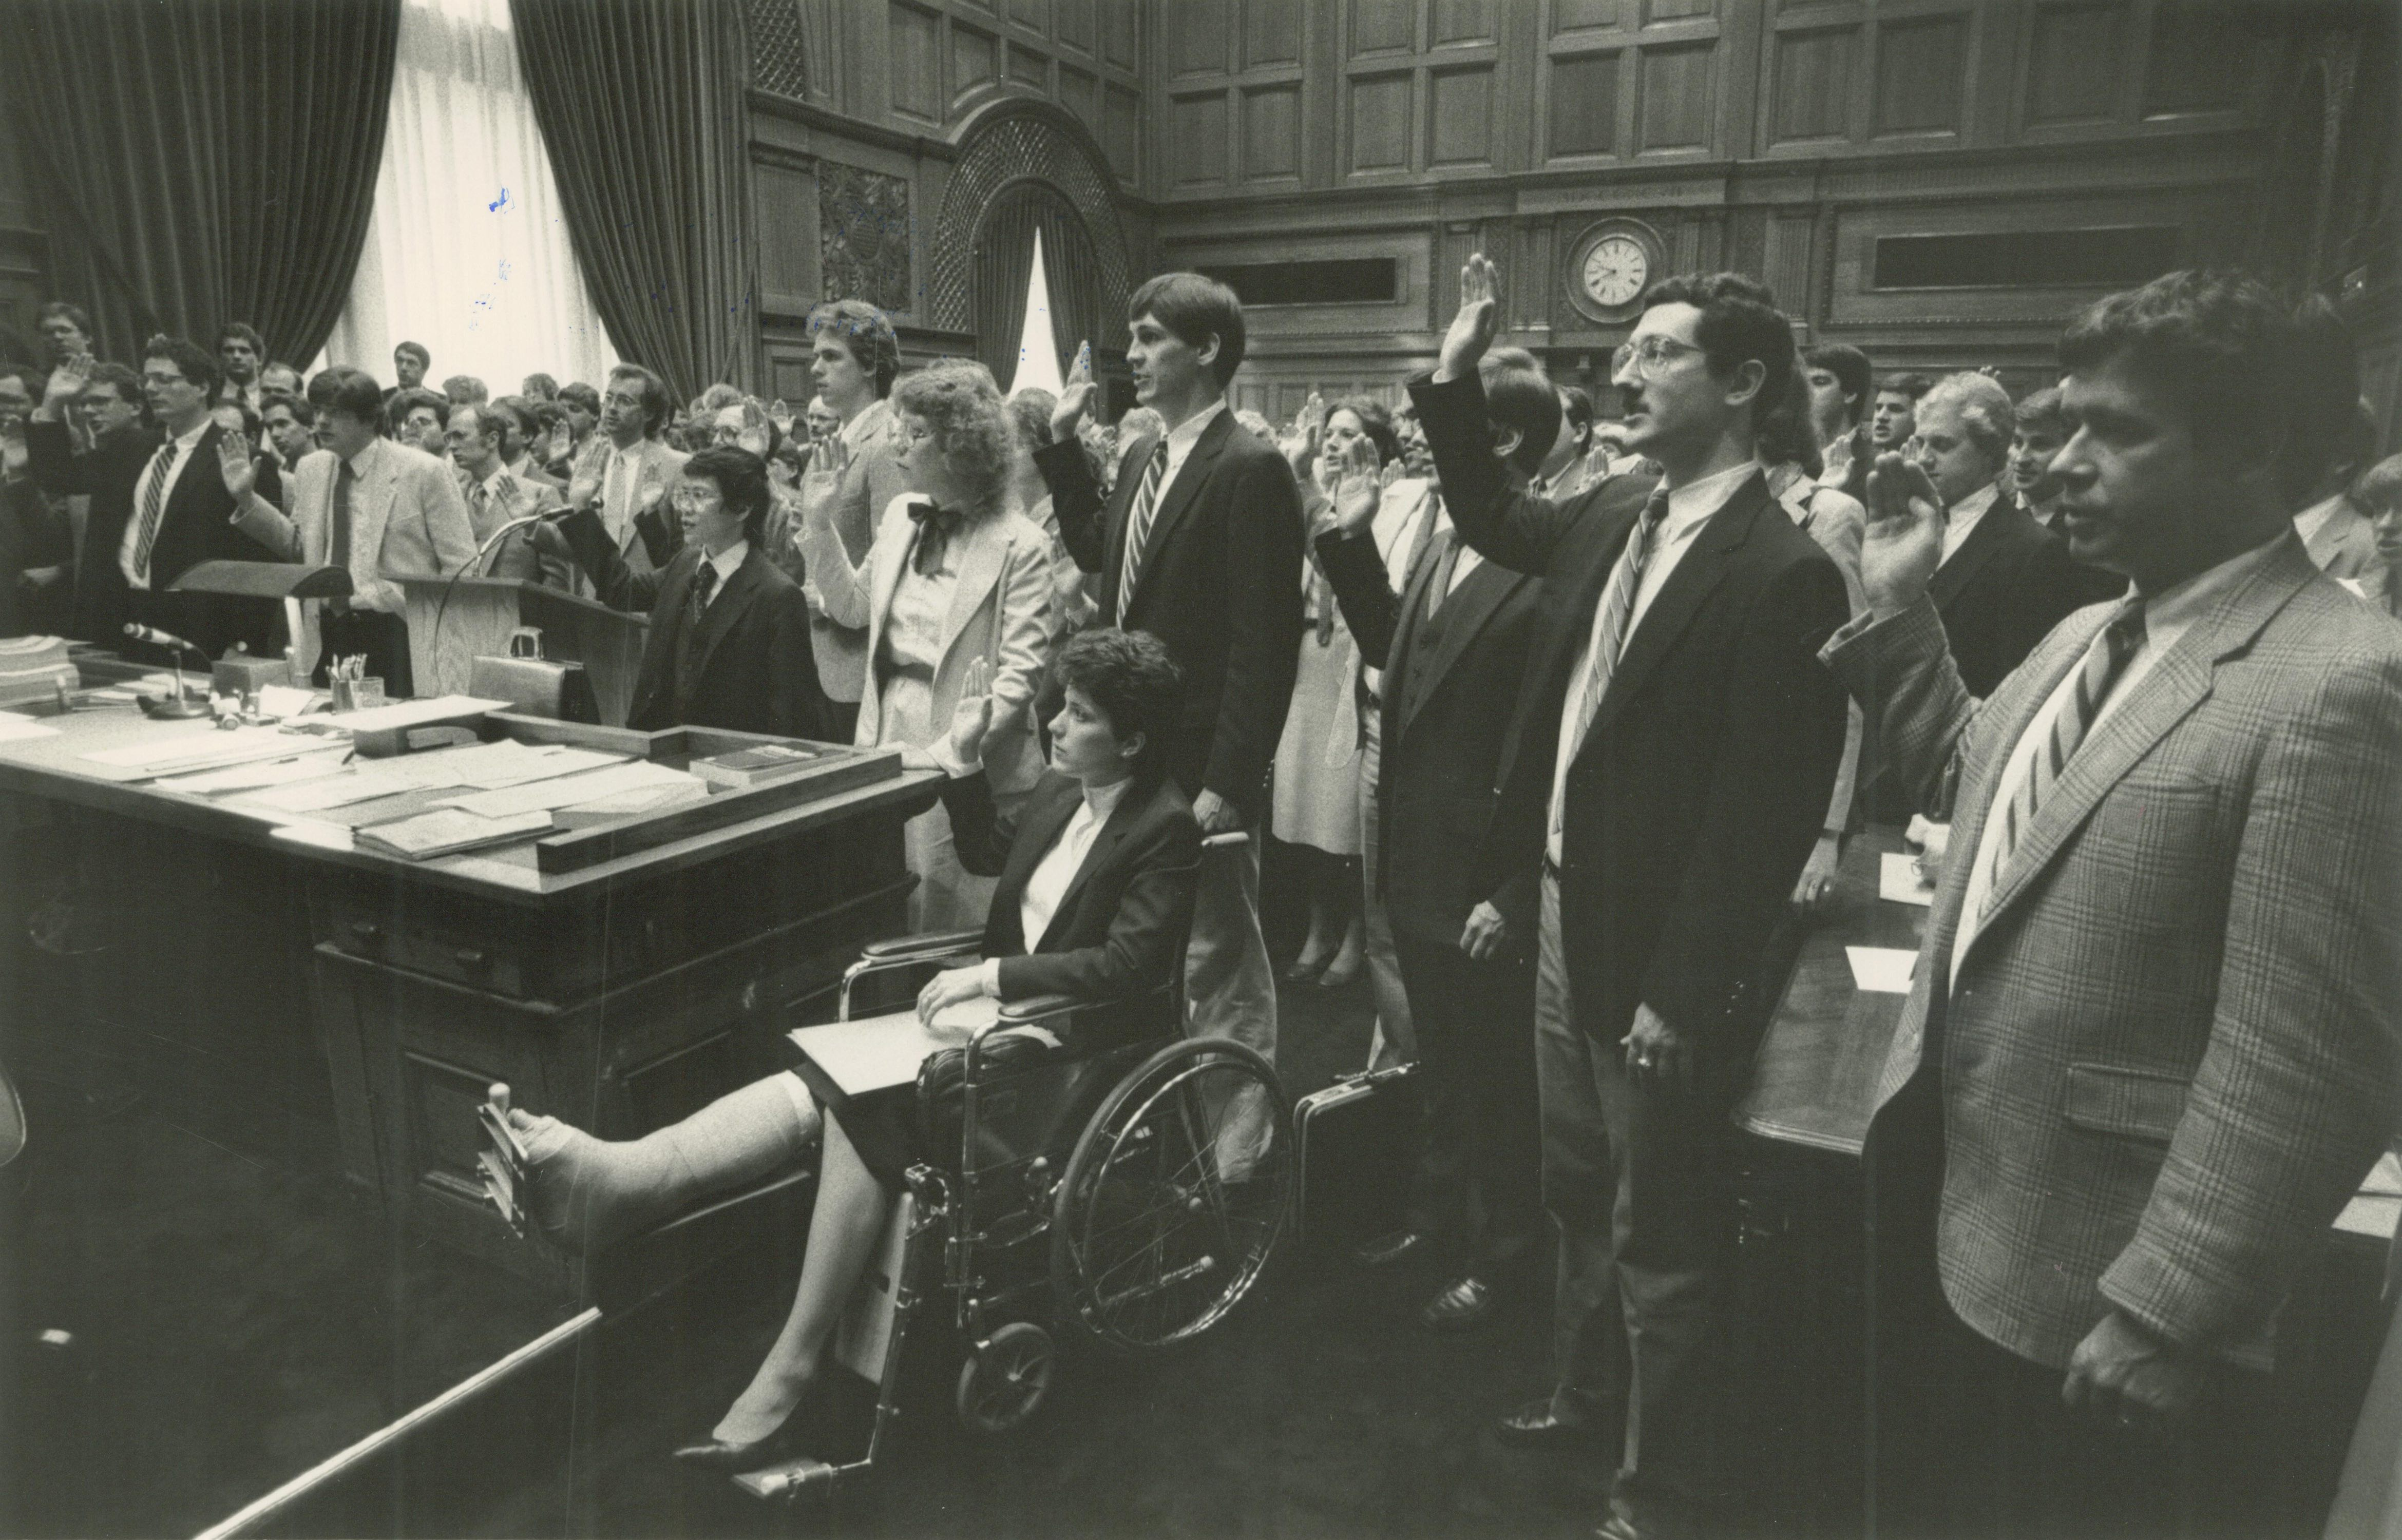 <table class=&quot;lightbox&quot;><tr><td colspan=2 class=&quot;lightbox-title&quot;>Lawyers Being Sworn In</td></tr><tr><td colspan=2 class=&quot;lightbox-caption&quot;>A group of Milwaukee lawyers are being sworn in in this photo from 1984.</td></tr><tr><td colspan=2 class=&quot;lightbox-spacer&quot;></td></tr><tr class=&quot;lightbox-detail&quot;><td class=&quot;cell-title&quot;>Source: </td><td class=&quot;cell-value&quot;>From the Historic Photo Collection of the Milwaukee Public Library. Reprinted with permission.<br /><a href=&quot;http://content.mpl.org/cdm/singleitem/collection/HstoricPho/id/4366/rec/1&quot; target=&quot;_blank&quot;>Milwaukee Public Library</a></td></tr><tr class=&quot;filler-row&quot;><td colspan=2>&nbsp;</td></tr></table>